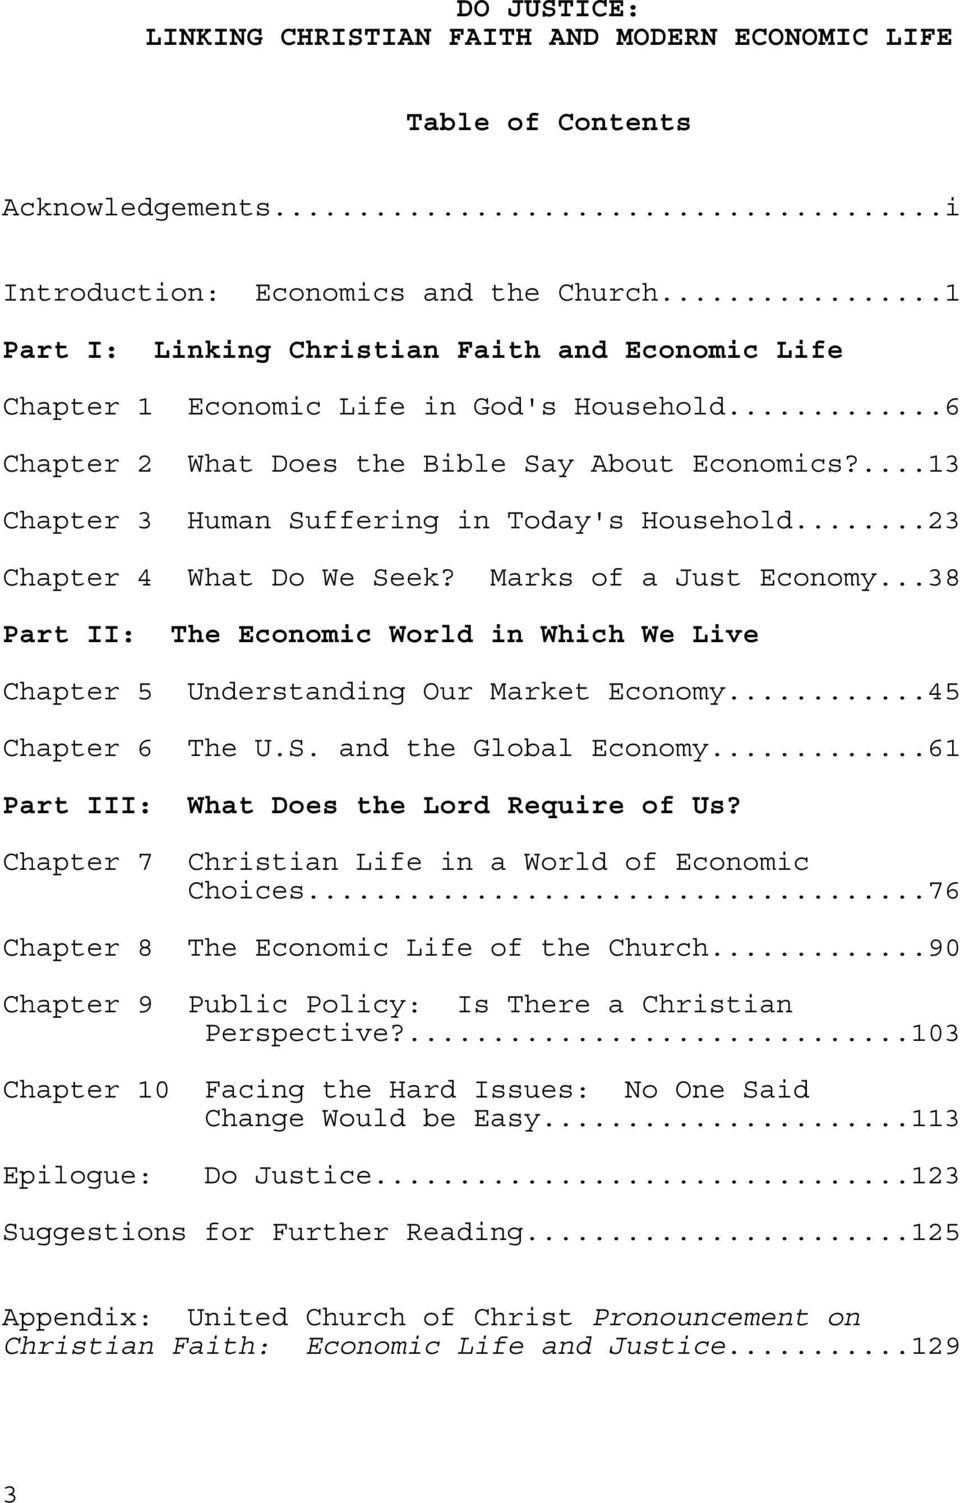 ...13 Chapter 3 Human Suffering in Today's Household...23 Chapter 4 What Do We Seek? Marks of a Just Economy...38 Part II: The Economic World in Which We Live Chapter 5 Understanding Our Market Economy.